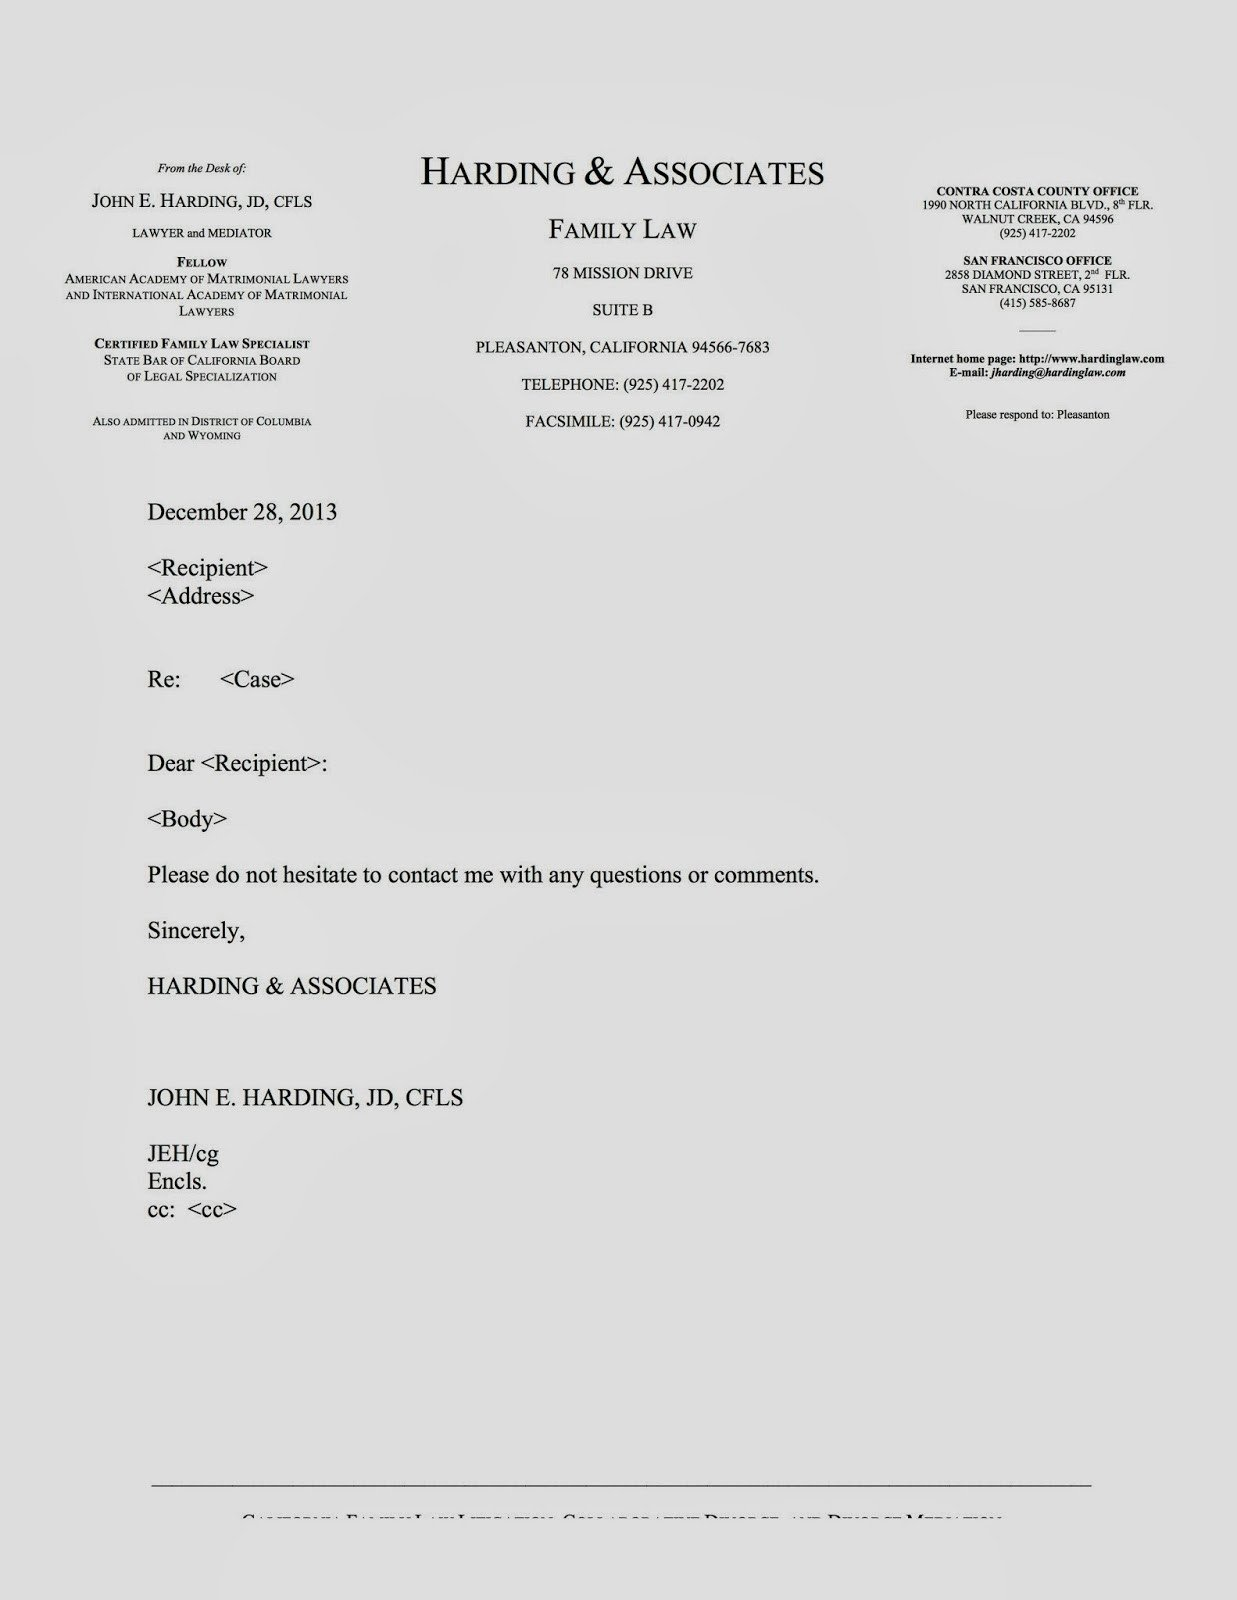 Law Firm Letterhead Template Family Law Lawyer Tech & Practice 2013